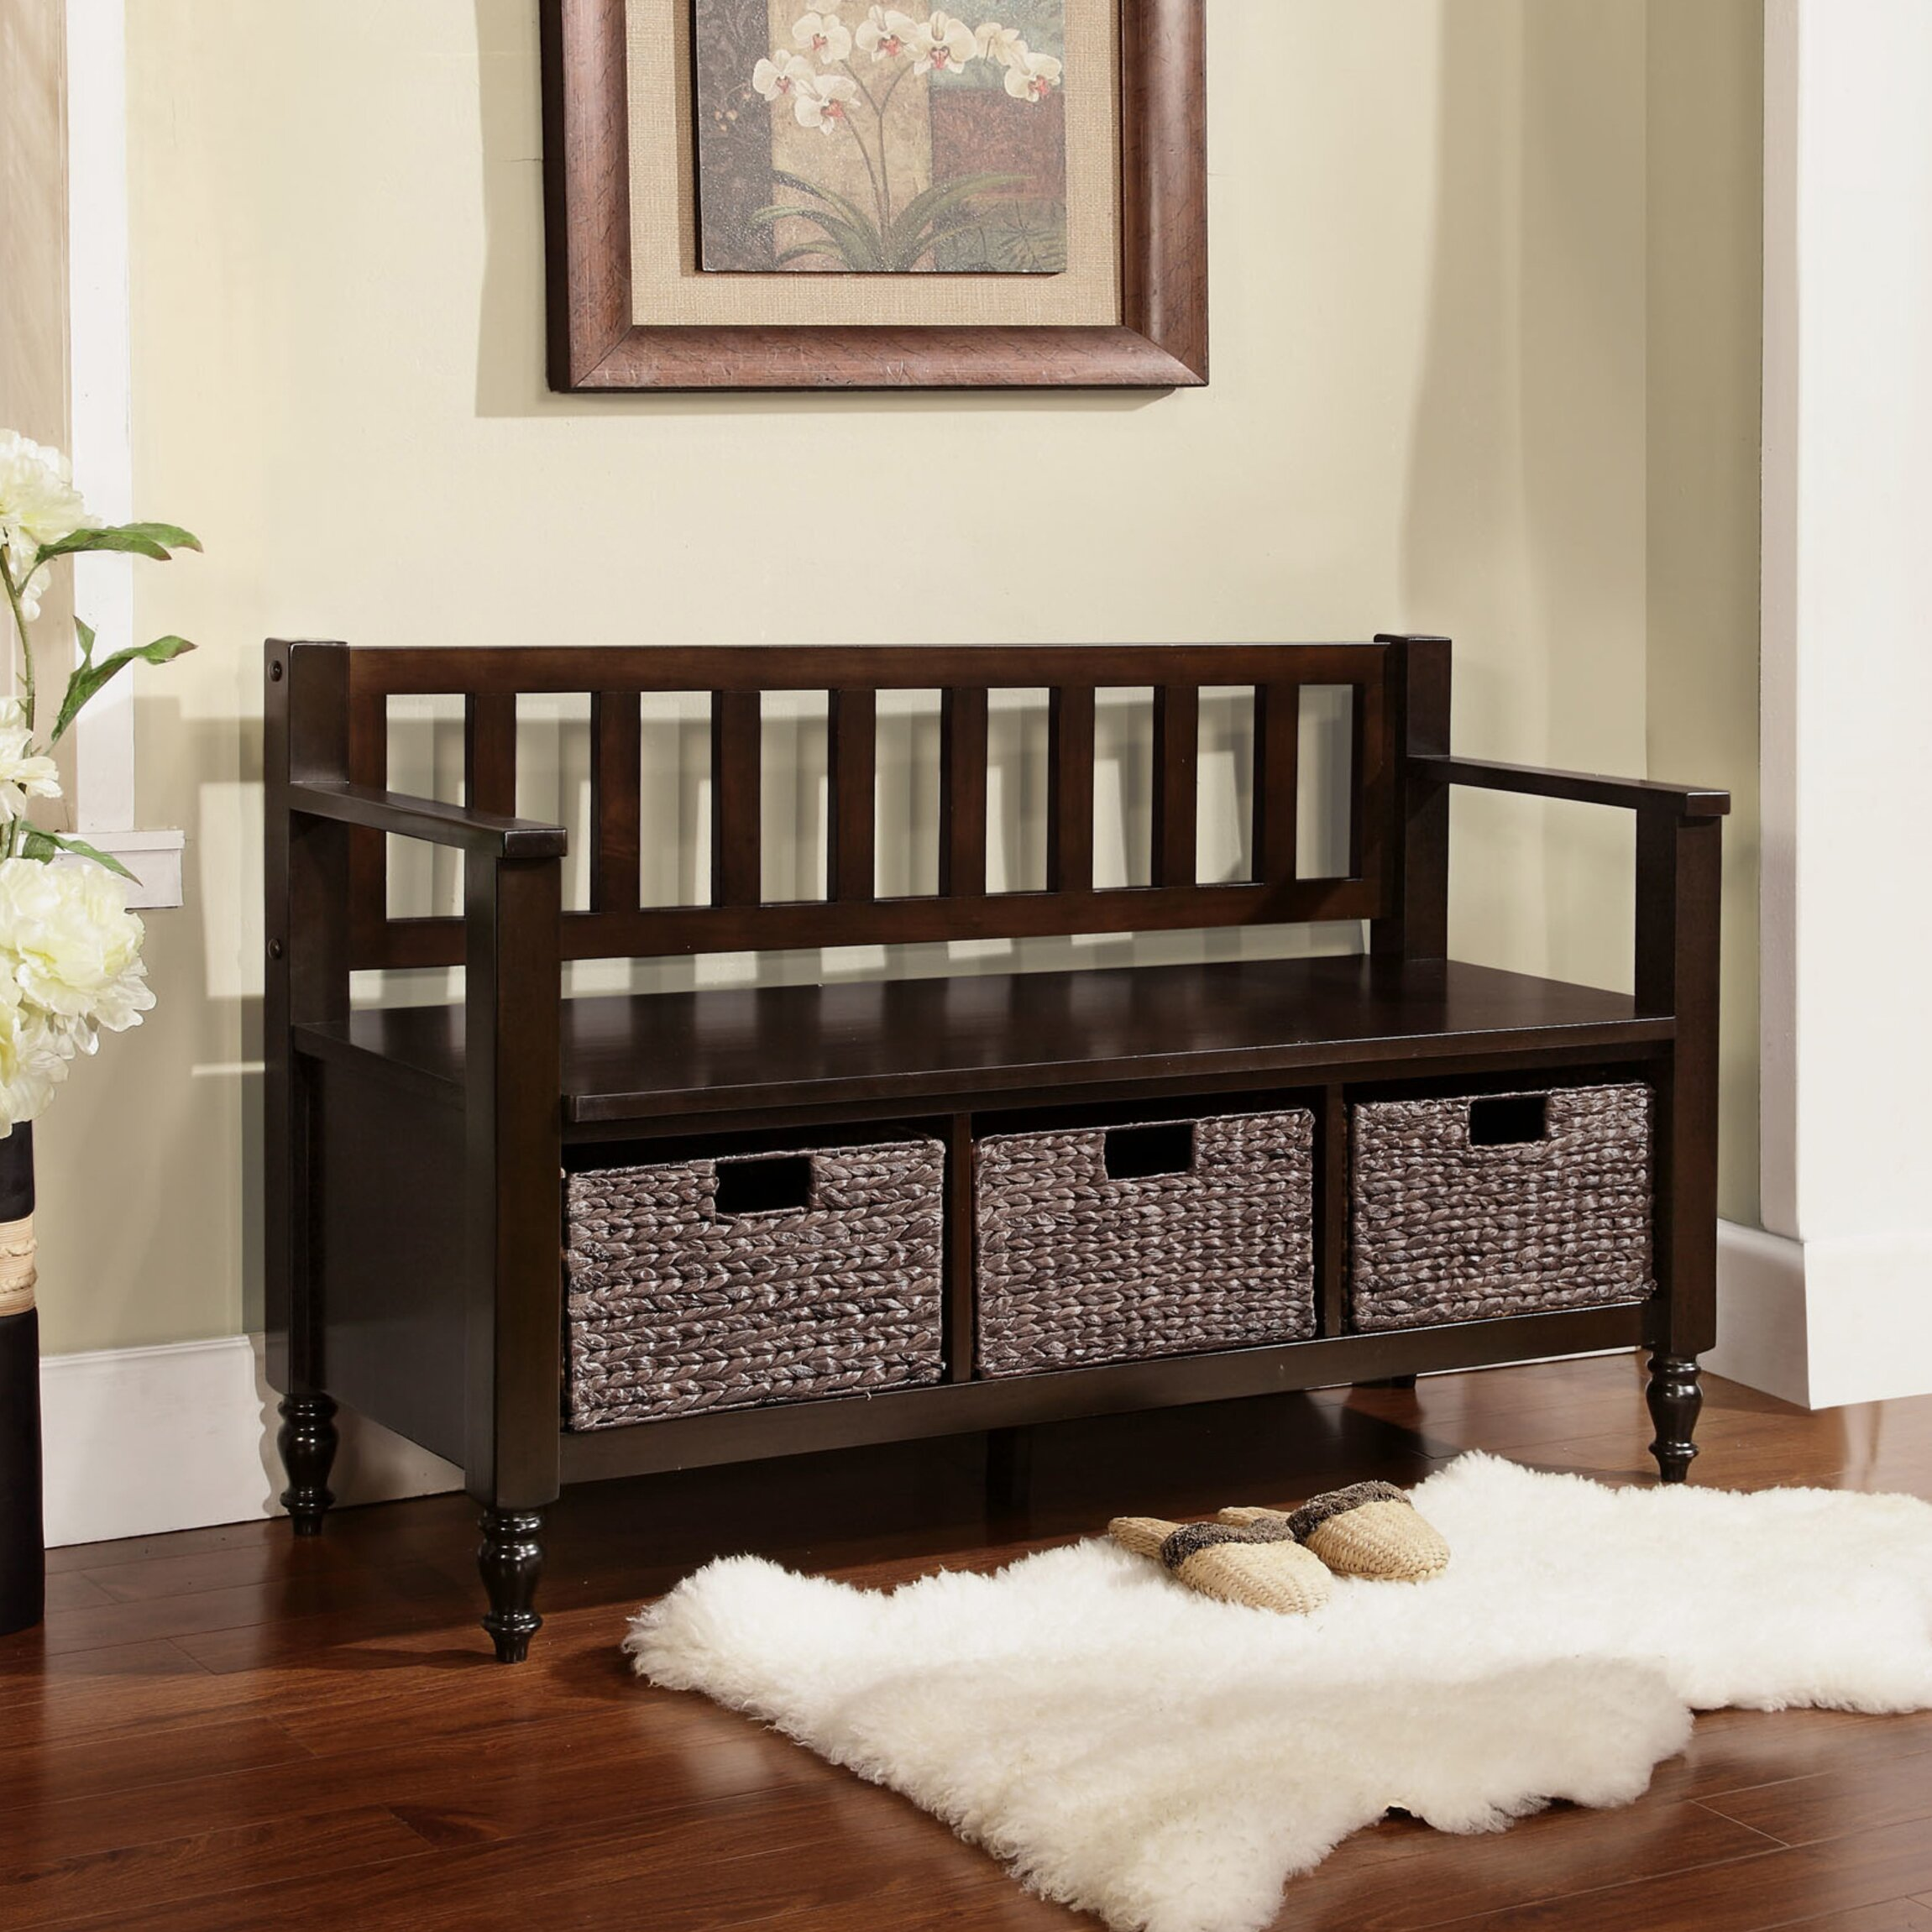 Foyer With Bench : Simpli home dakota entryway bench reviews wayfair